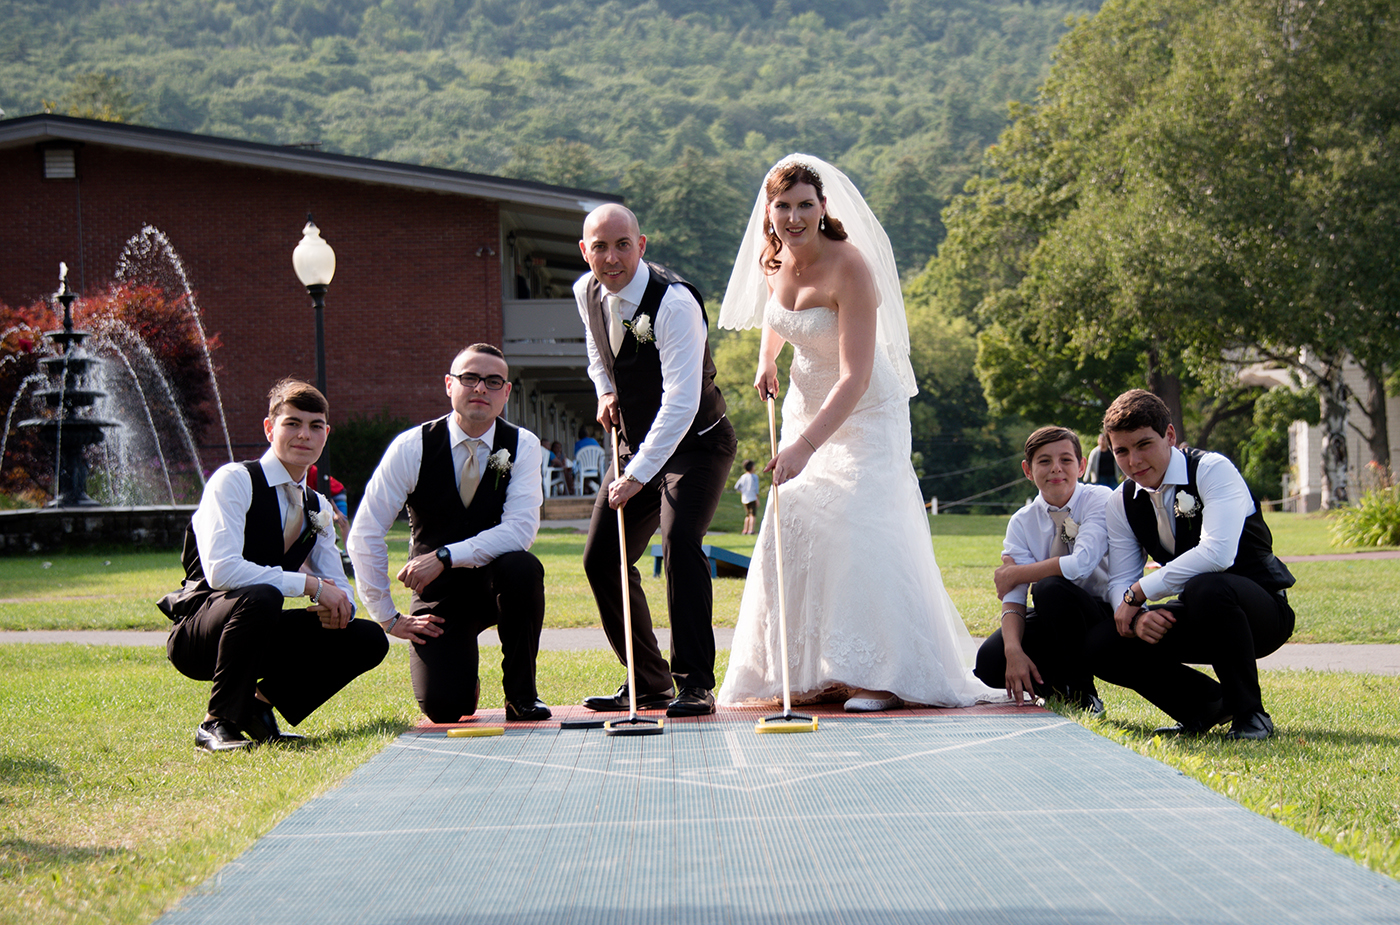 All Occasions Photography Albany NY - Wedding Photography Bride & Groom Playing Shuffleboard